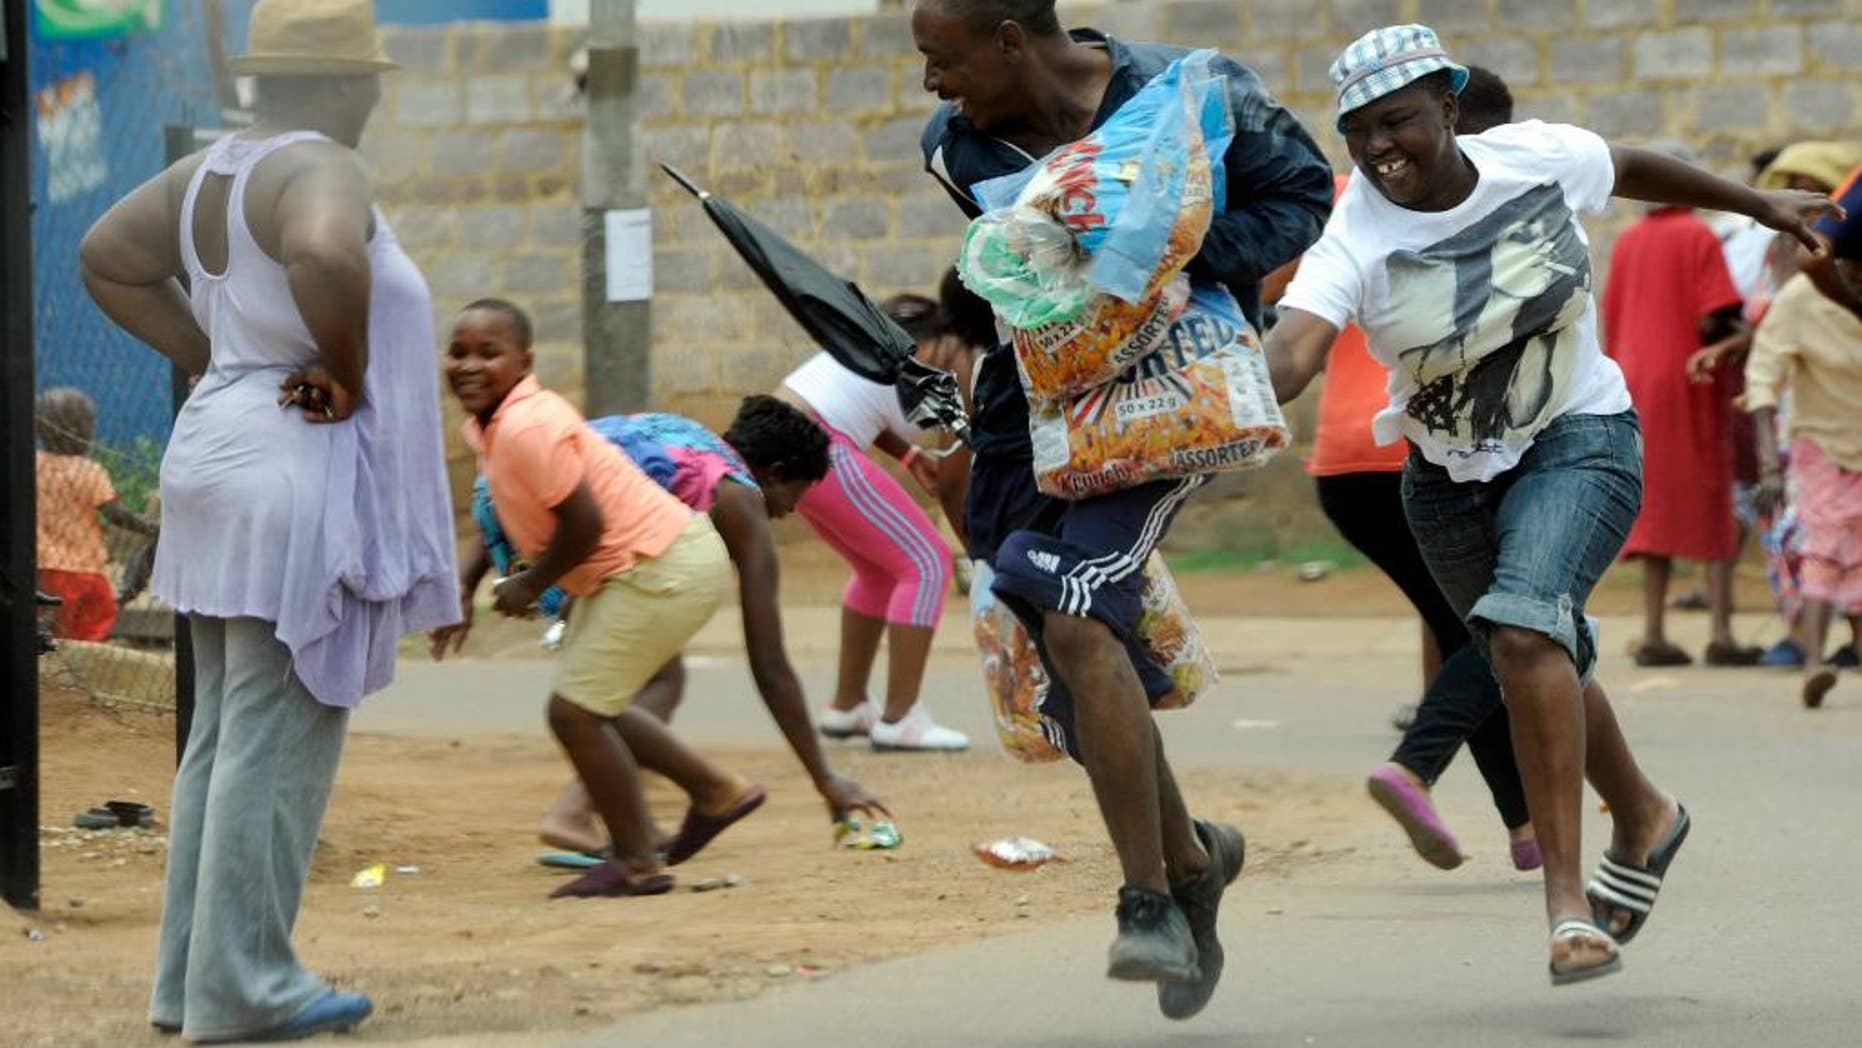 Looters make off with goods from a store in Soweto, South Africa, Thursday, Jan 22, 2015. About 70 people in South Africa have been arrested because of violent protests and looting, much of which was aimed at shops owned by nationals from other African countries, local media reported Thursday. (AP Photo) SOUTH AFRICA OUT NO SALES  NO ARCHIVES